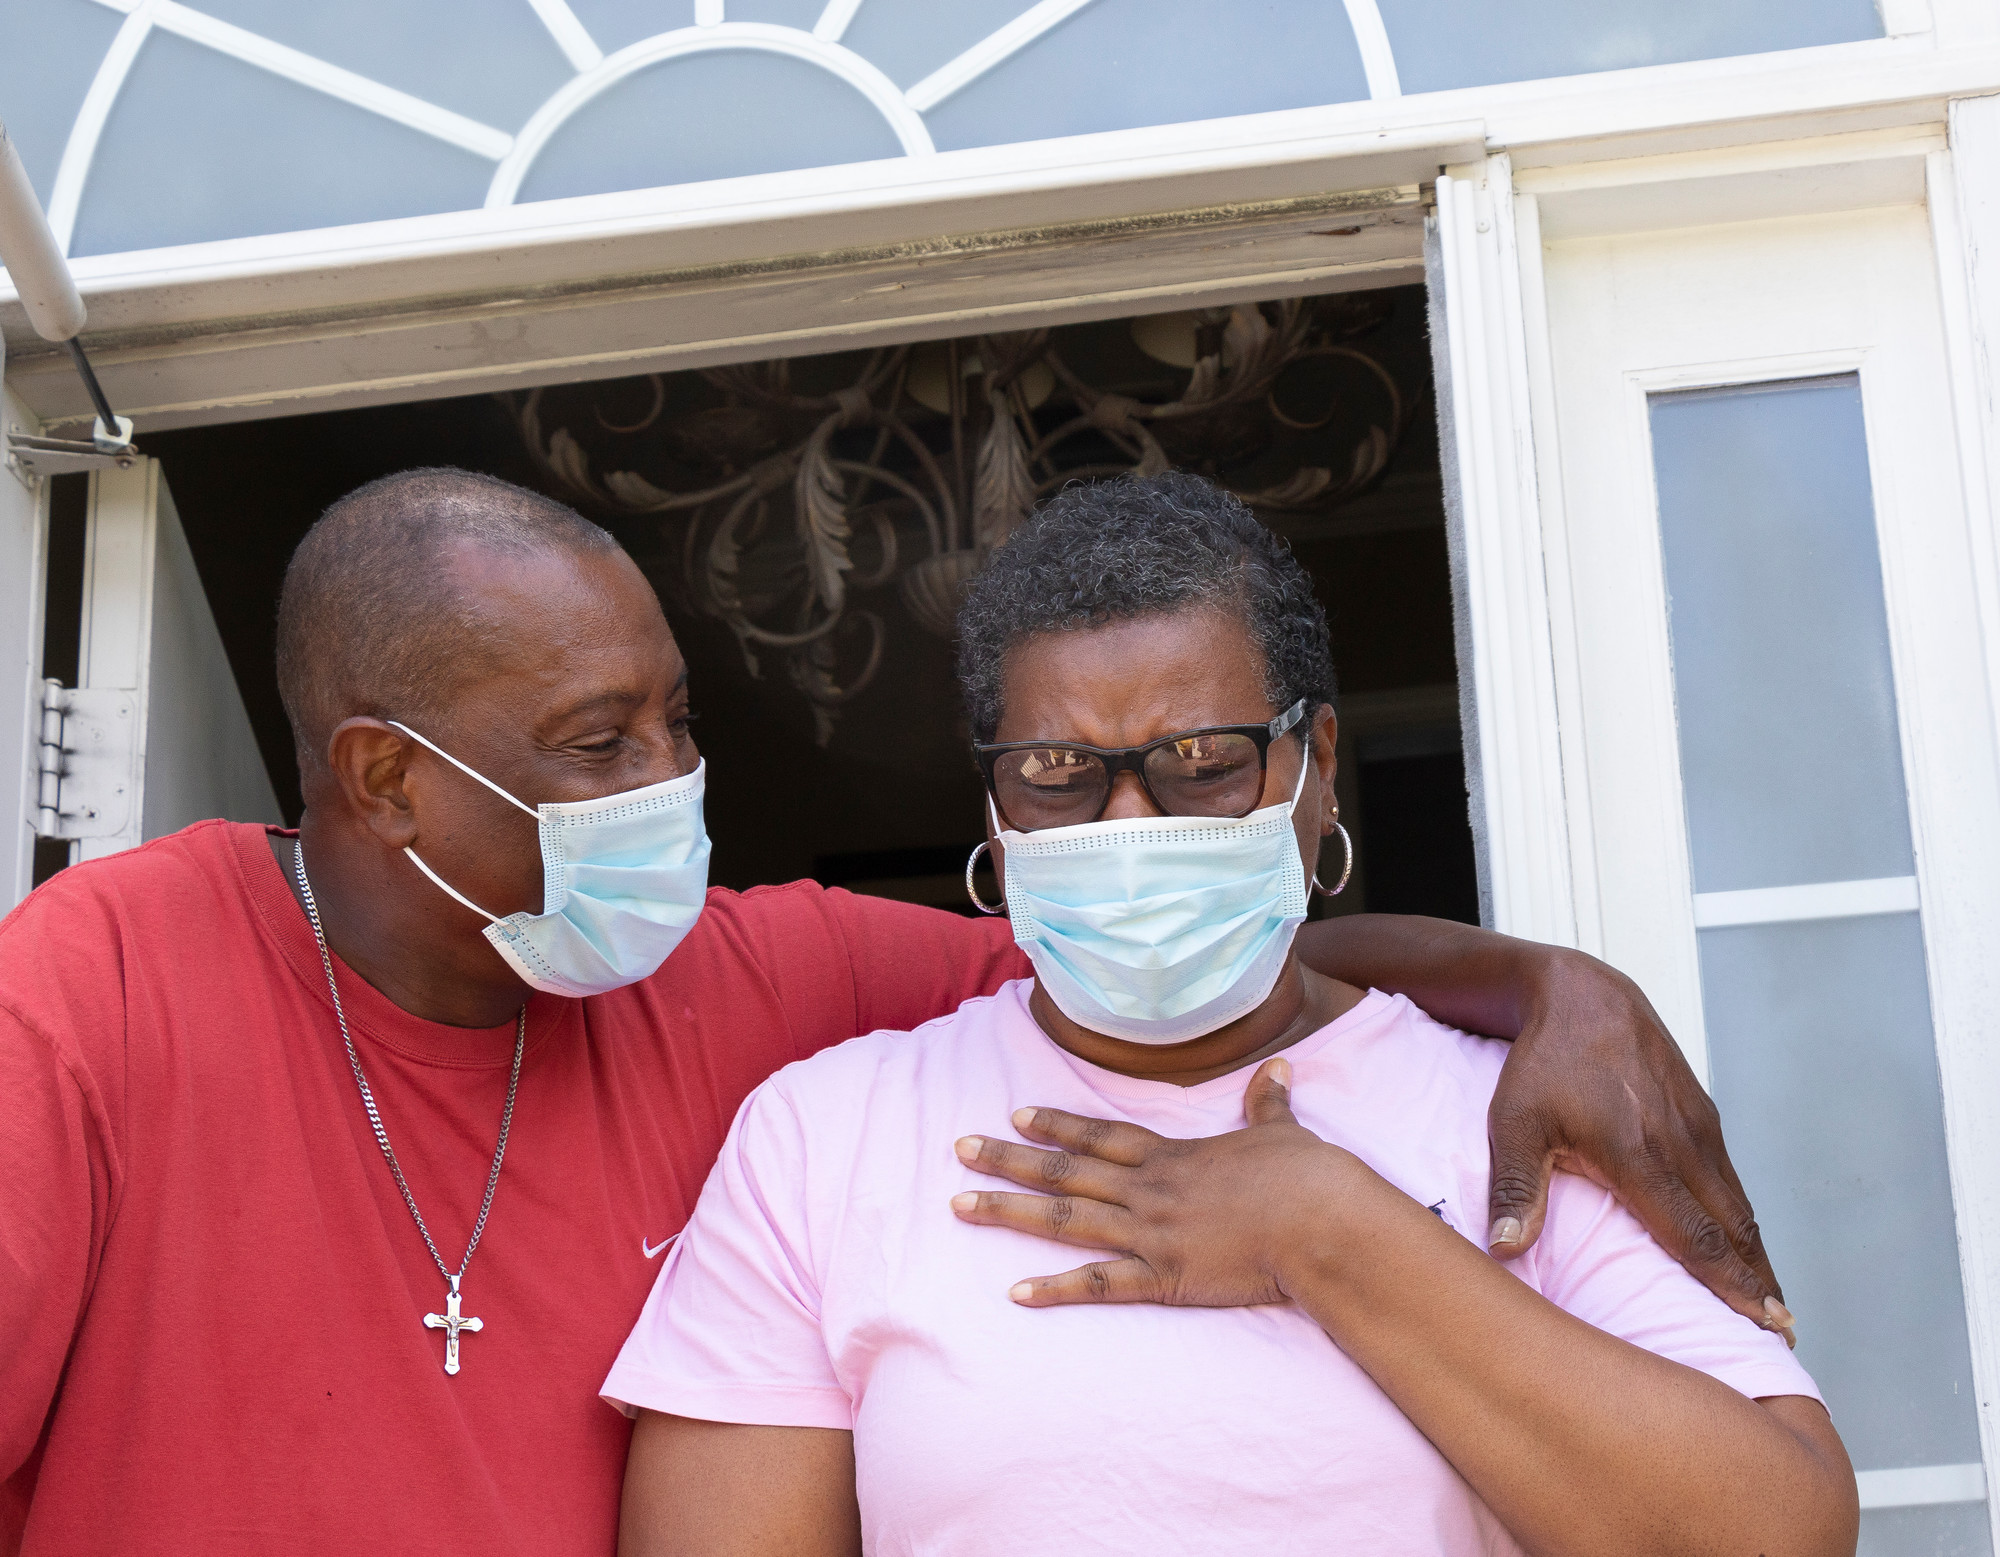 A Black man wraps an arm around a Black woman who is clutching her chest. Both are wearing masks.